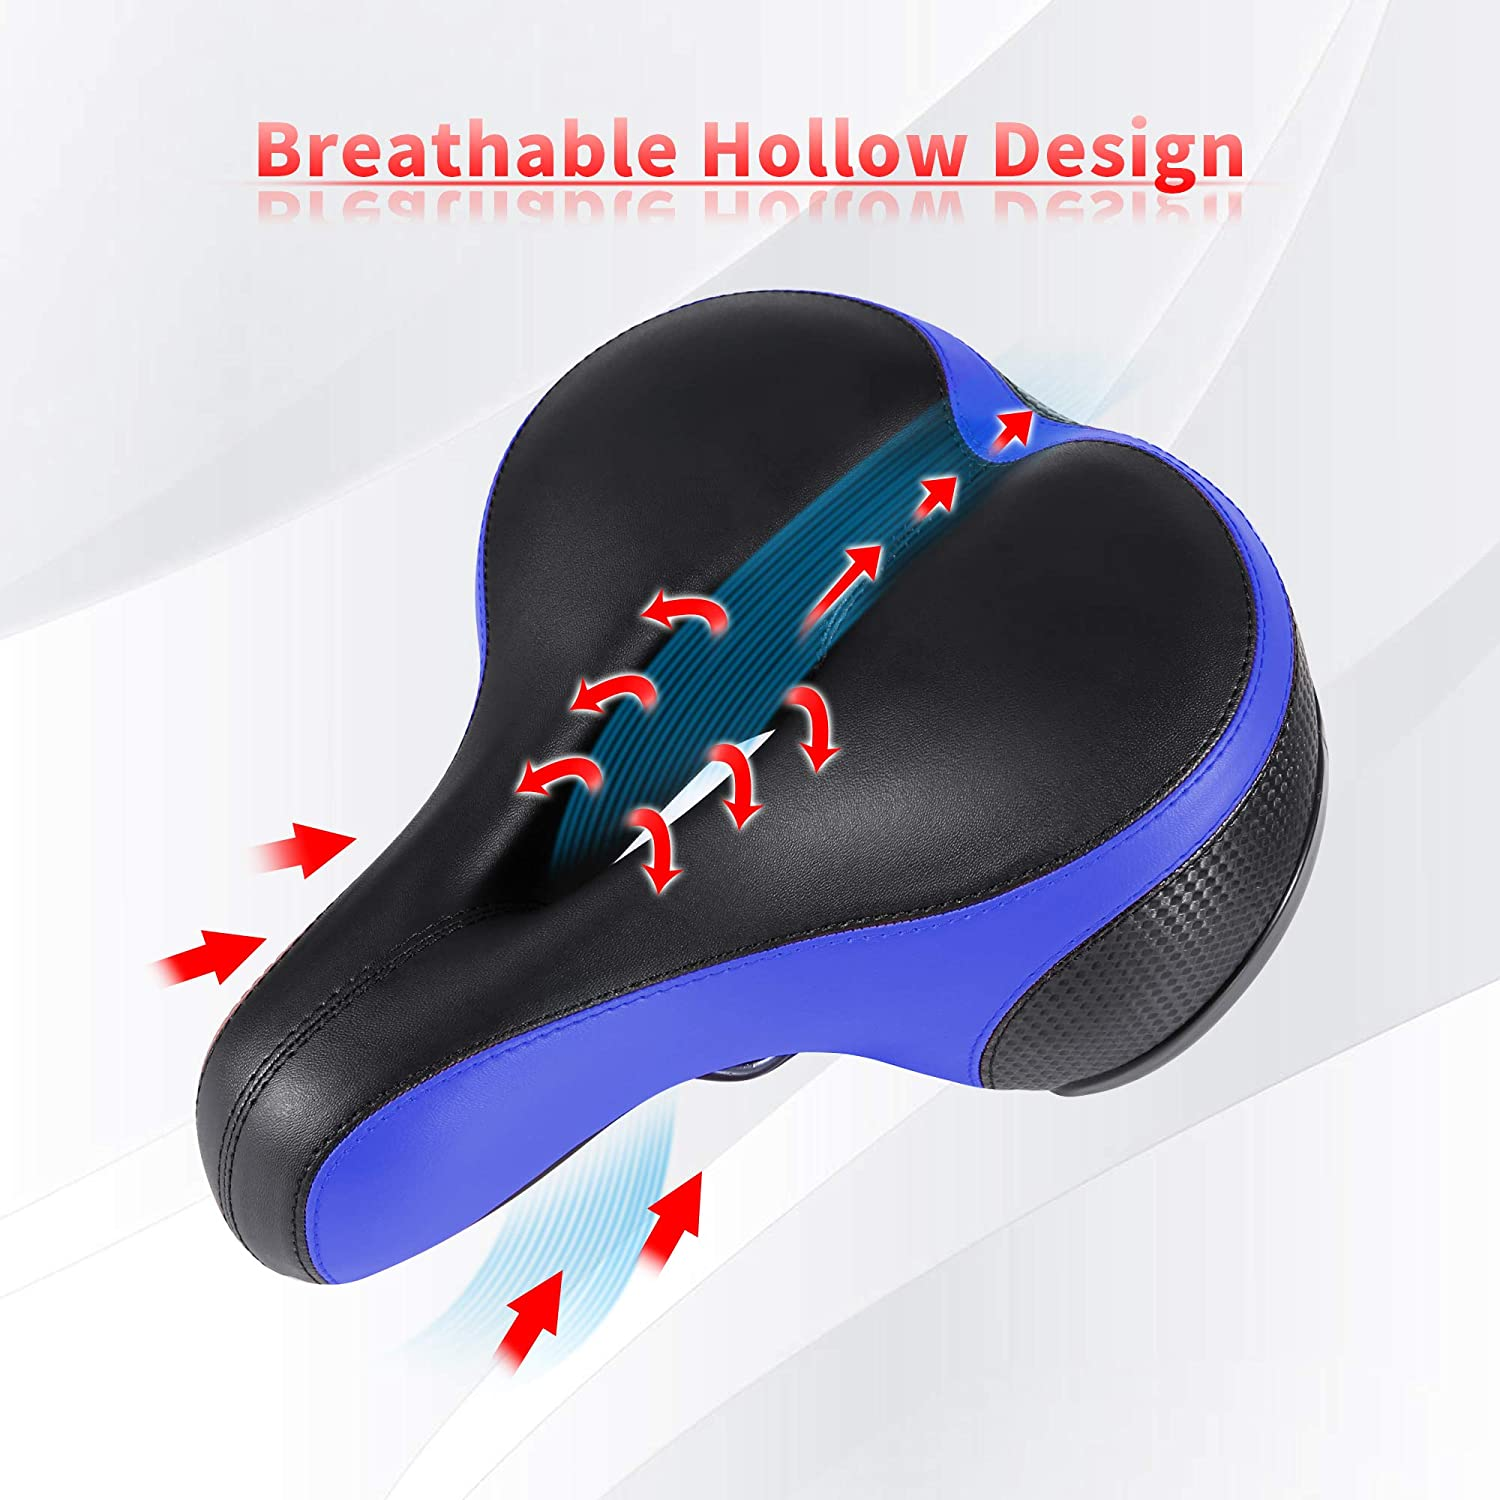 IPOW Comfort Bike Seat for Women or Men Bicycle Saddle Replacement Padded Soft High Density Memory Foam with Dual Shock Absorbing Rubber Balls Suspension Universal Fit for Indoor//Outdoor Bikes